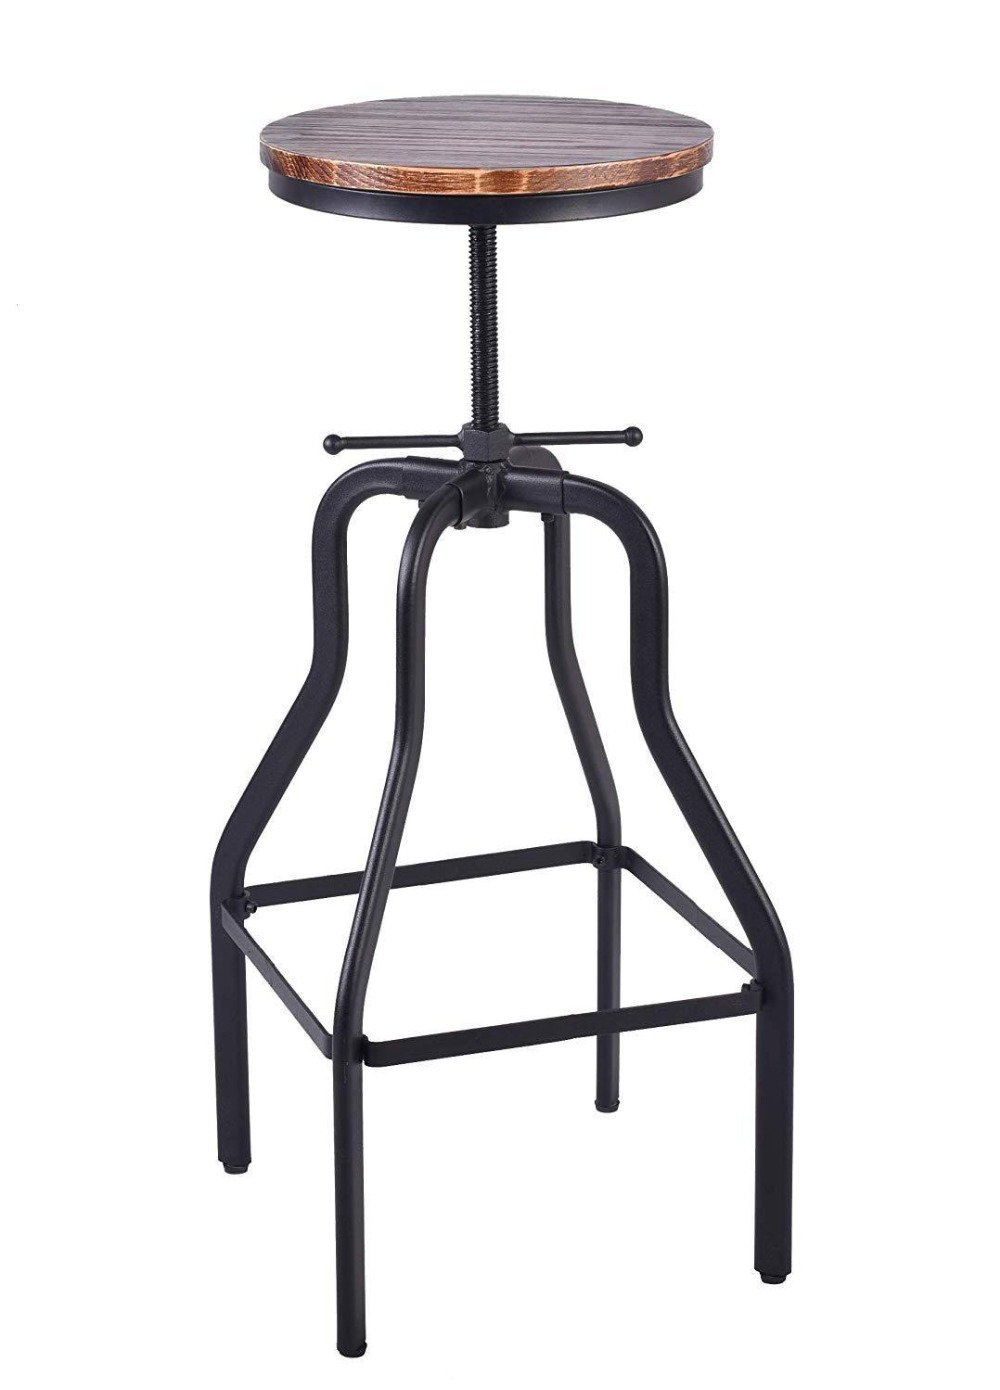 Vintage Bar Stools Industrial Adjustable Height Swivel Natural Pinewood Seat Kitchen Dining Breakfast Chair